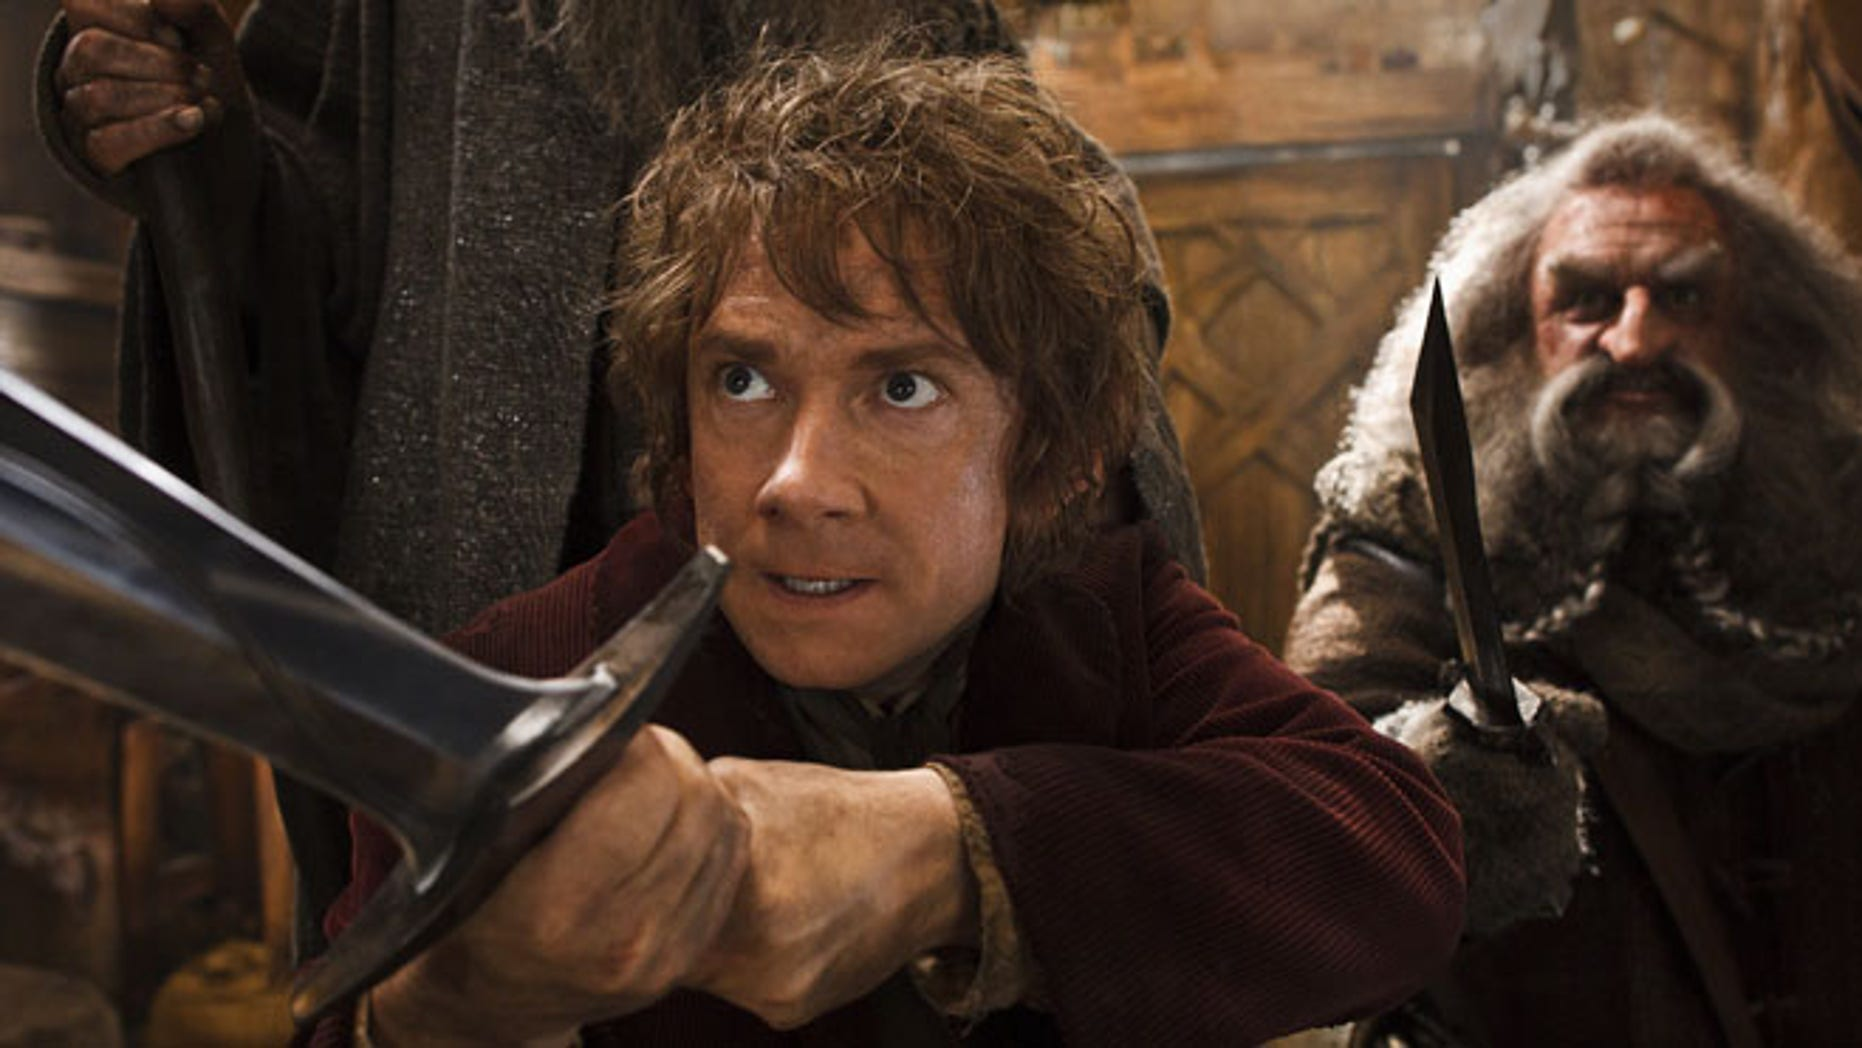 """This image released by Warner Bros. Pictures shows Martin Freeman, left, and John Callen in a scene from """"The Hobbit: The Desolation of Smaug.""""  The Hobbit: The Desolation of Smaug held off Anchorman 2 on a busy weekend at the box office. According to studio estimates Sunday, Peter Jacksons Hobbit sequel took in $31.5 million in its second weekend of release. That topped Will Ferrells Anchorman sequel, which nevertheless opened strongly in second place."""